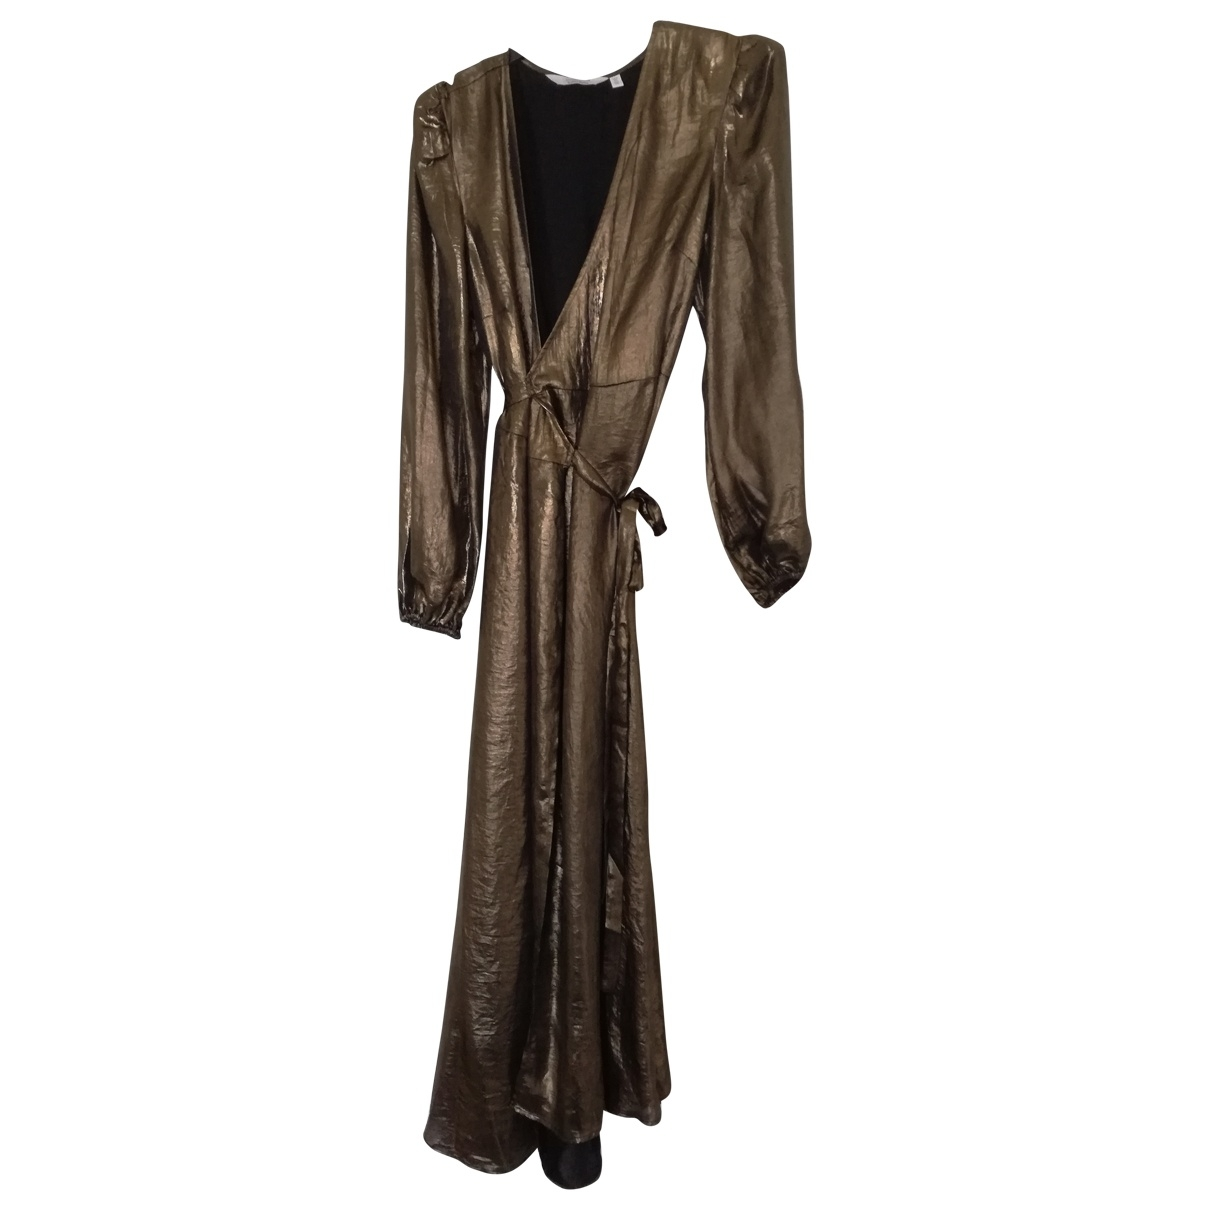 & Stories \N Gold dress for Women 8 US